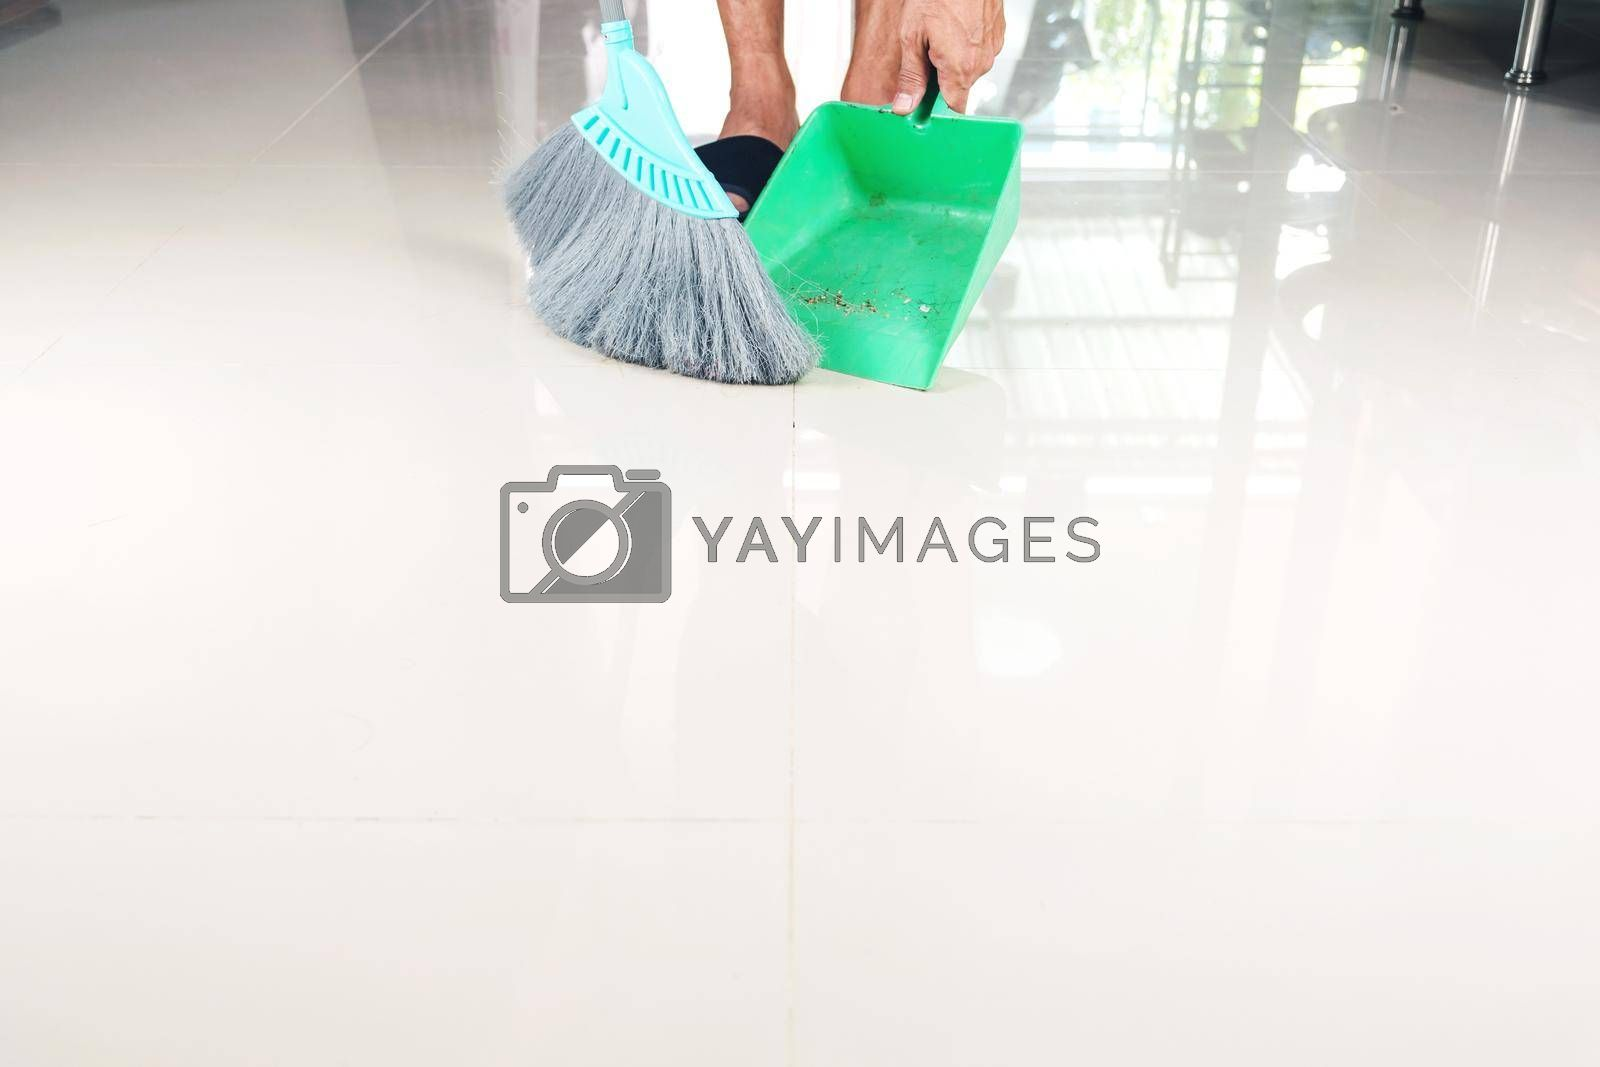 Clean tiled floors with a plastic broom and dustpan.